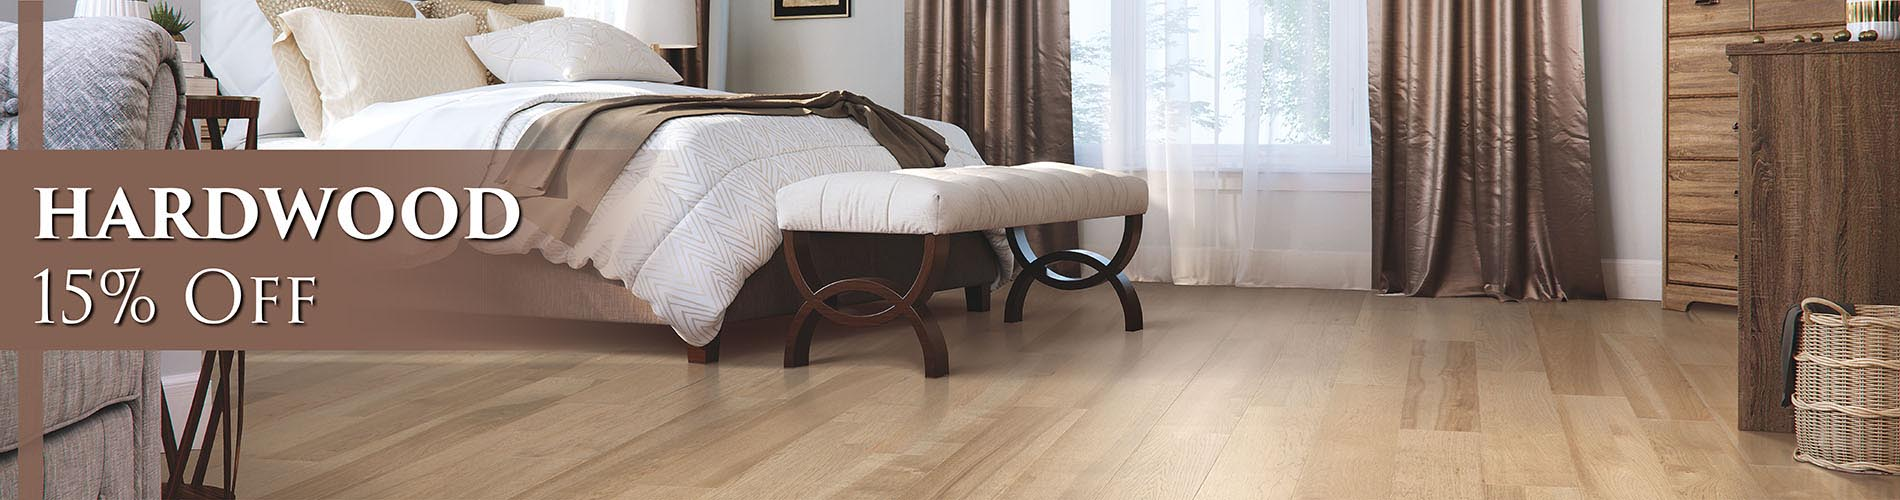 Hardwood 15% OFF - Come visit us today at Abbey Carpet & Floor of San Mateo